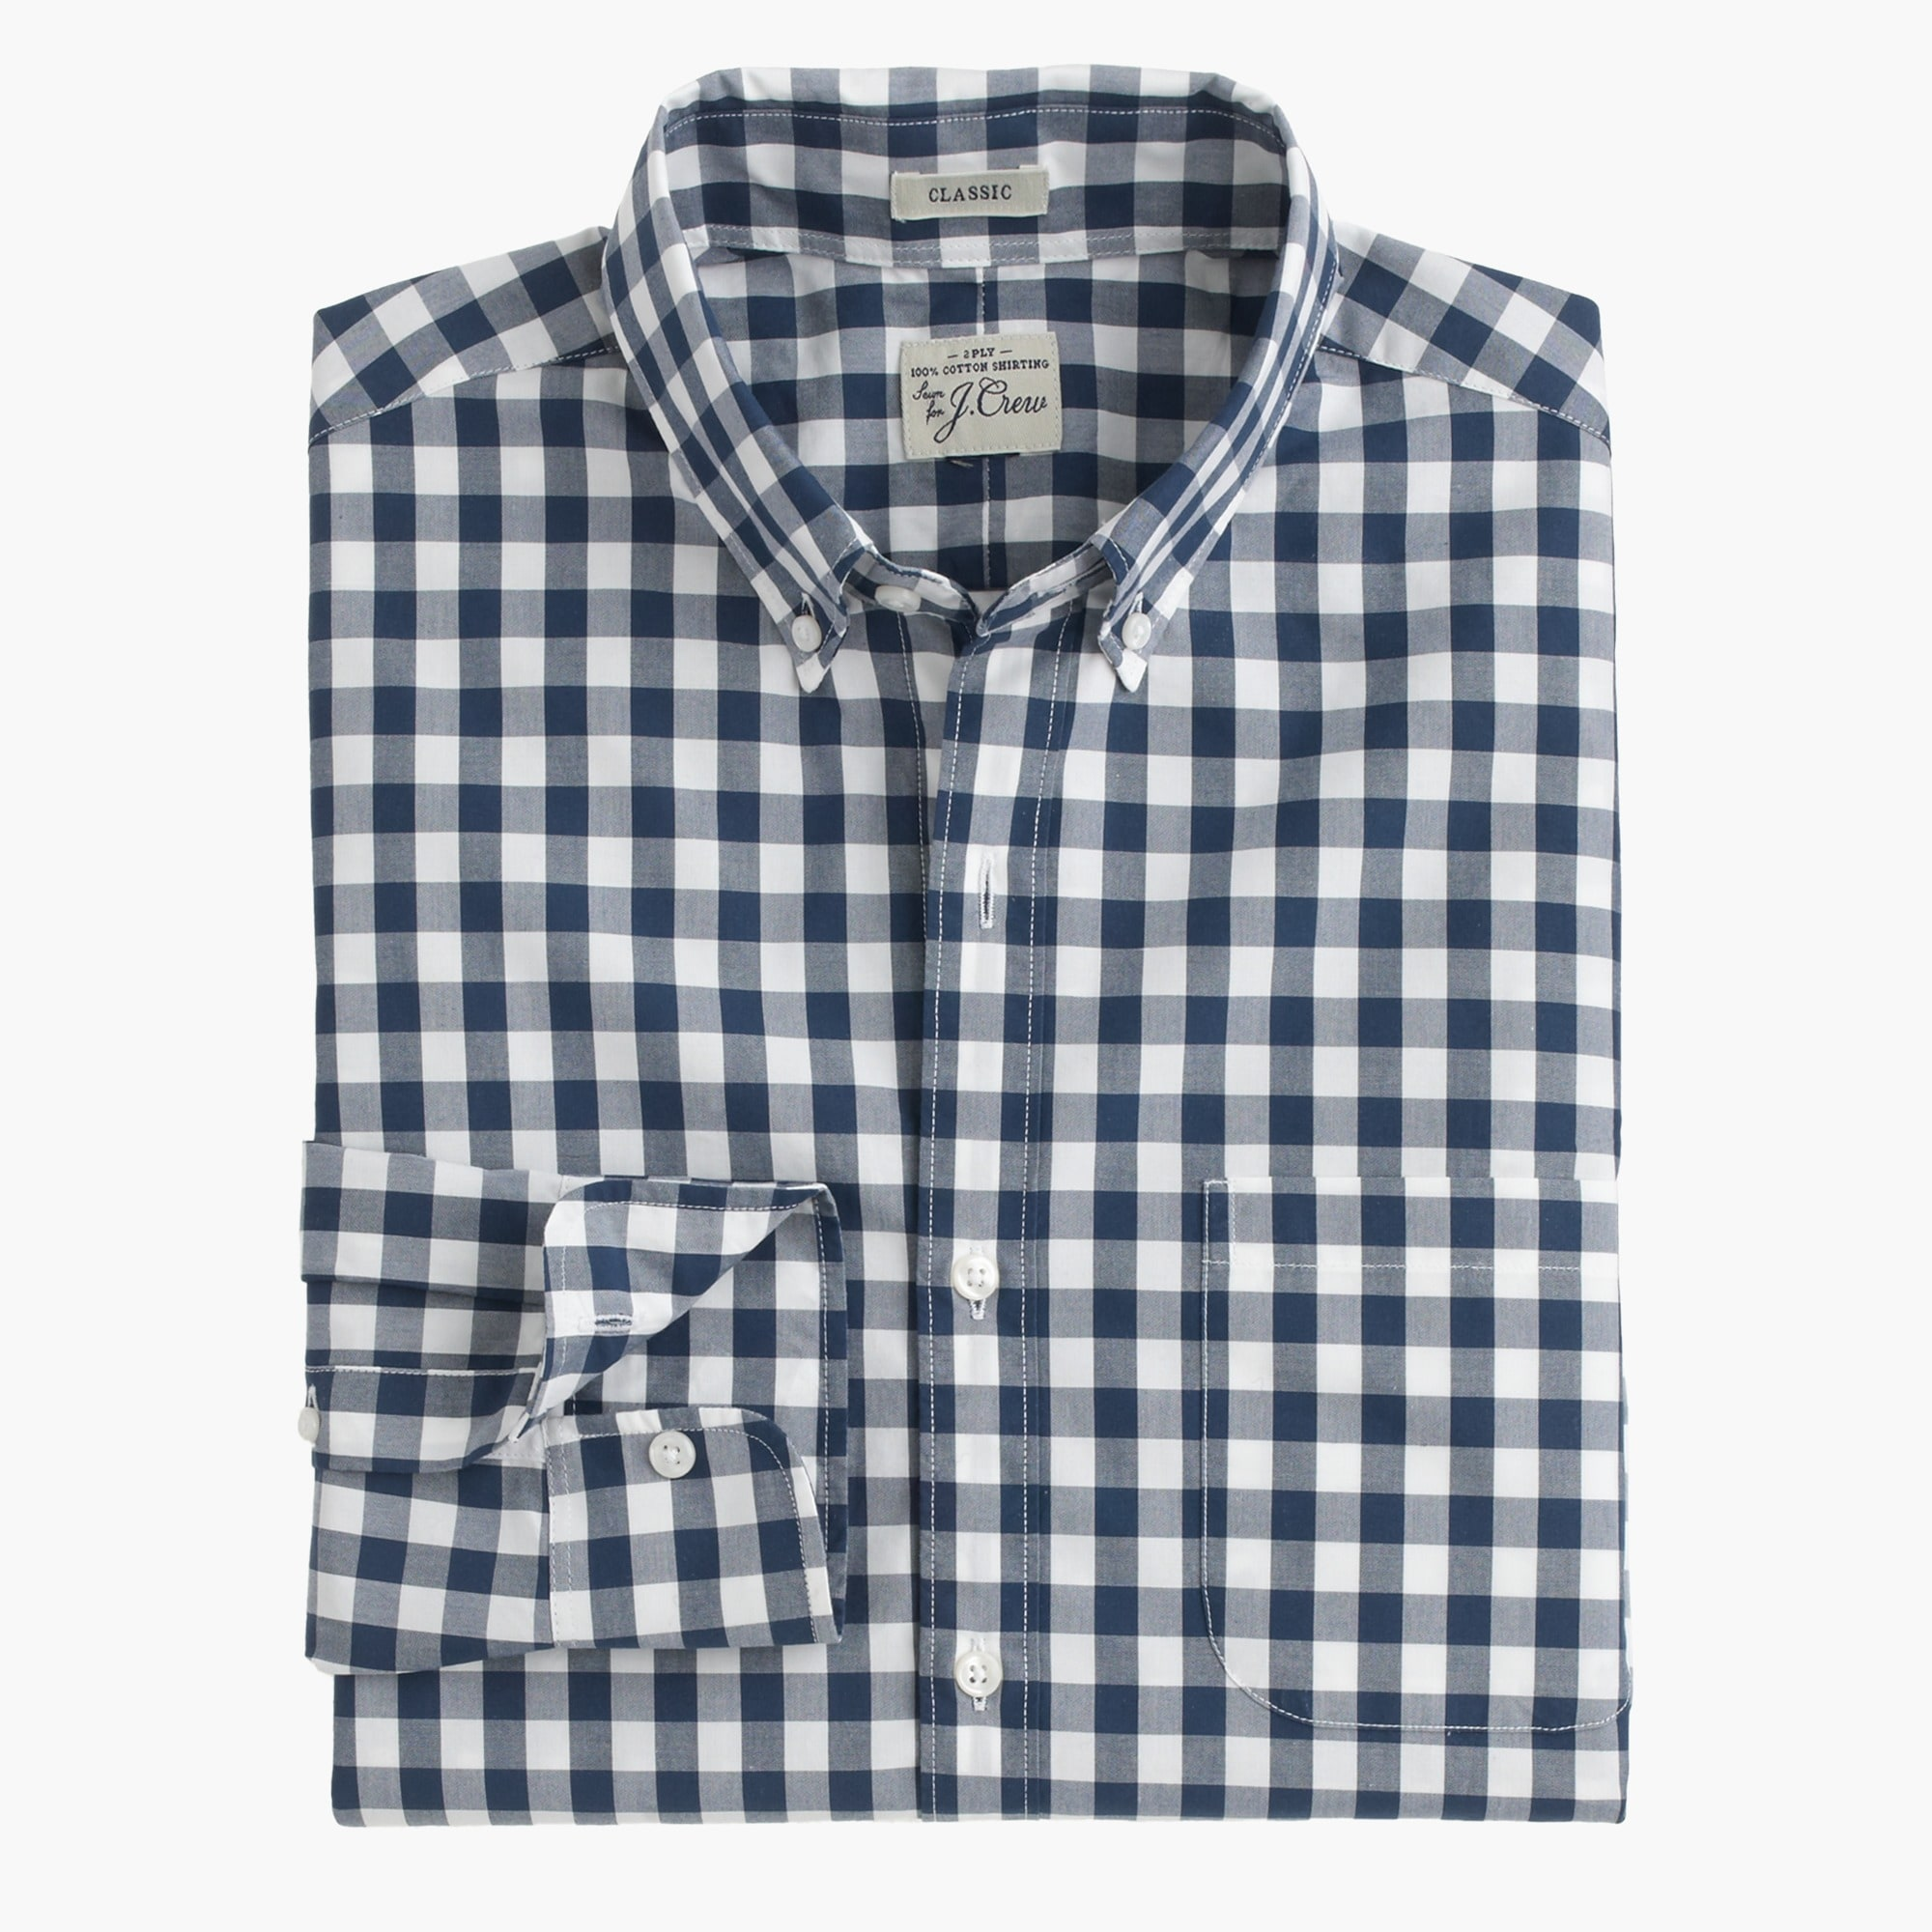 Image 1 for Tall Secret Wash shirt in faded gingham